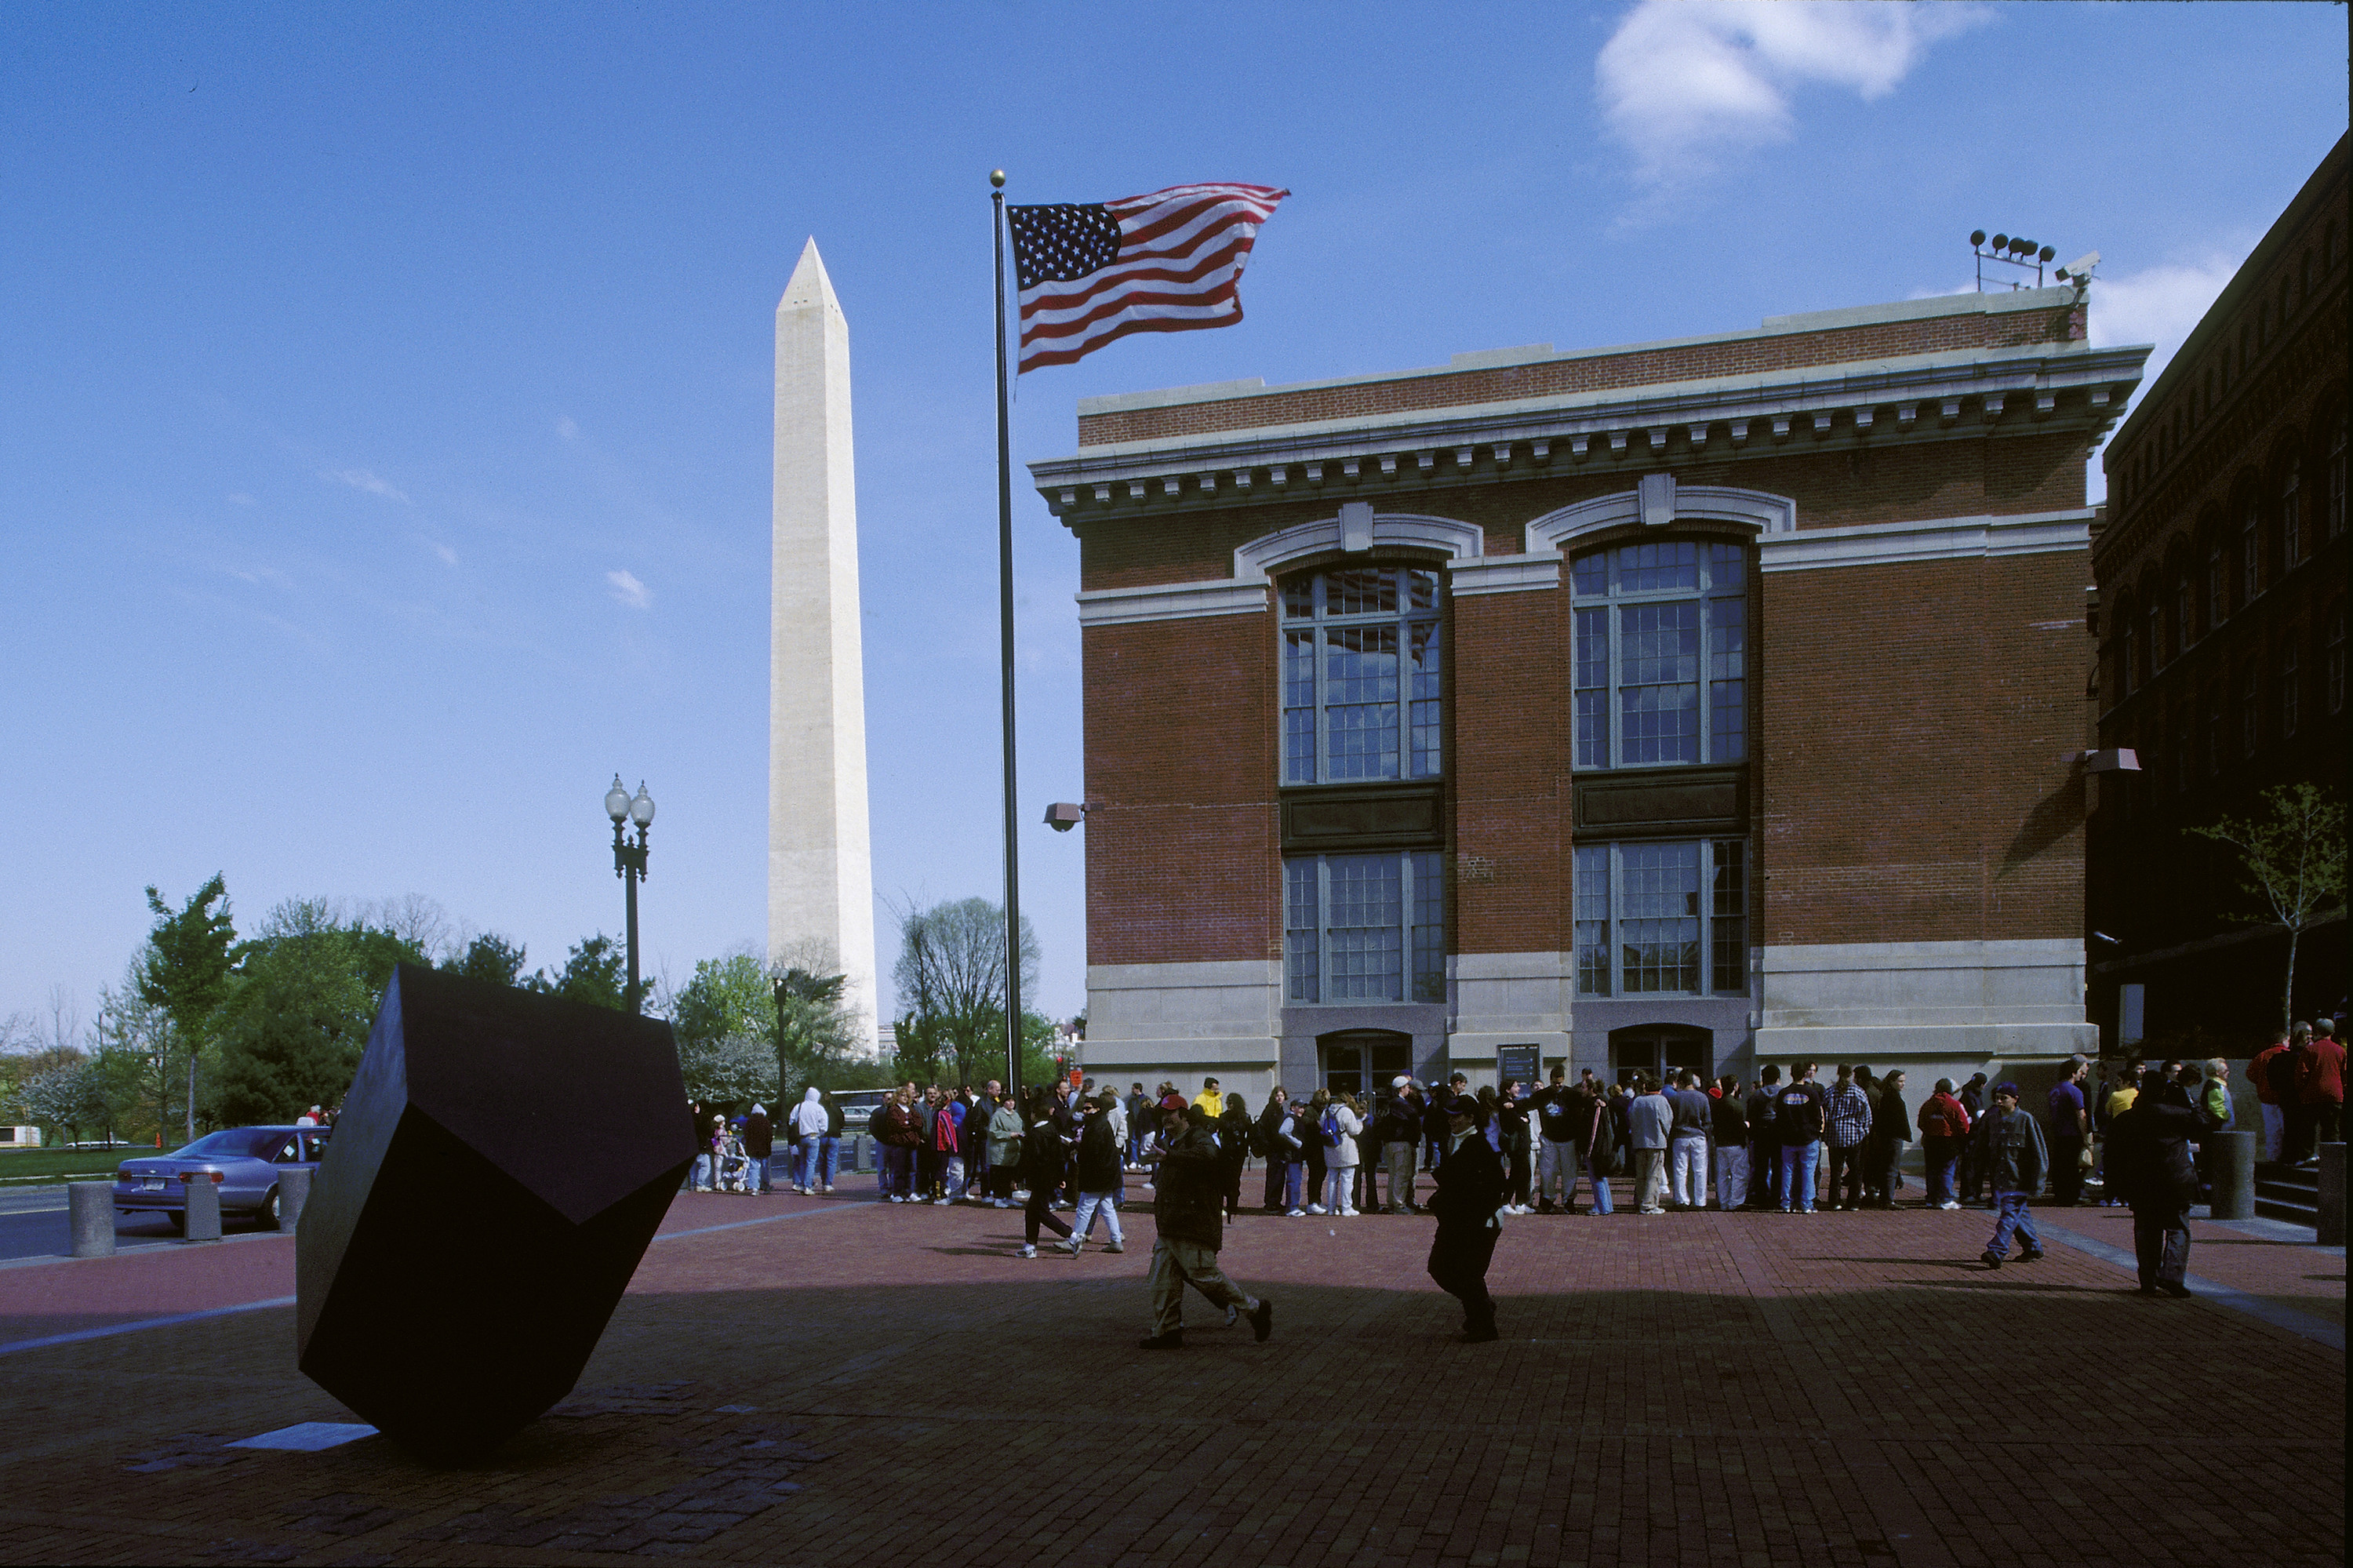 Visitors wait in line on the Eisenhower Plaza to enter the U.S. Holocaust Memorial Museum.  Behind them is the Washington Monument and the Ross Administration Building.